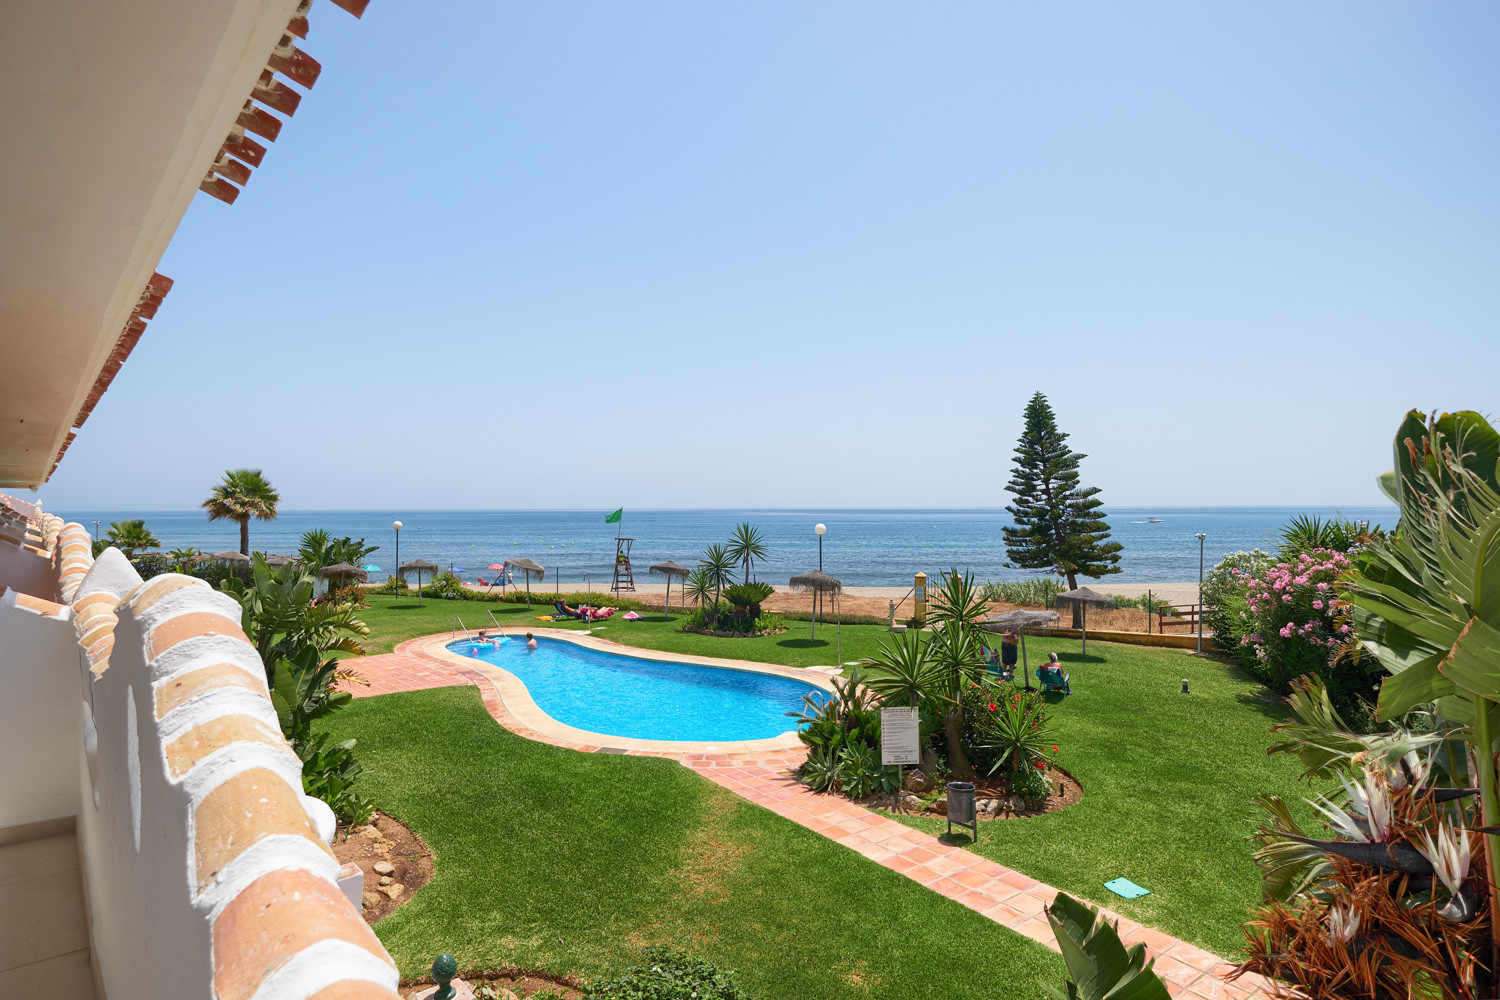 Apartment for sale in <i>Calahonda Playa, </i>Mijas Costa